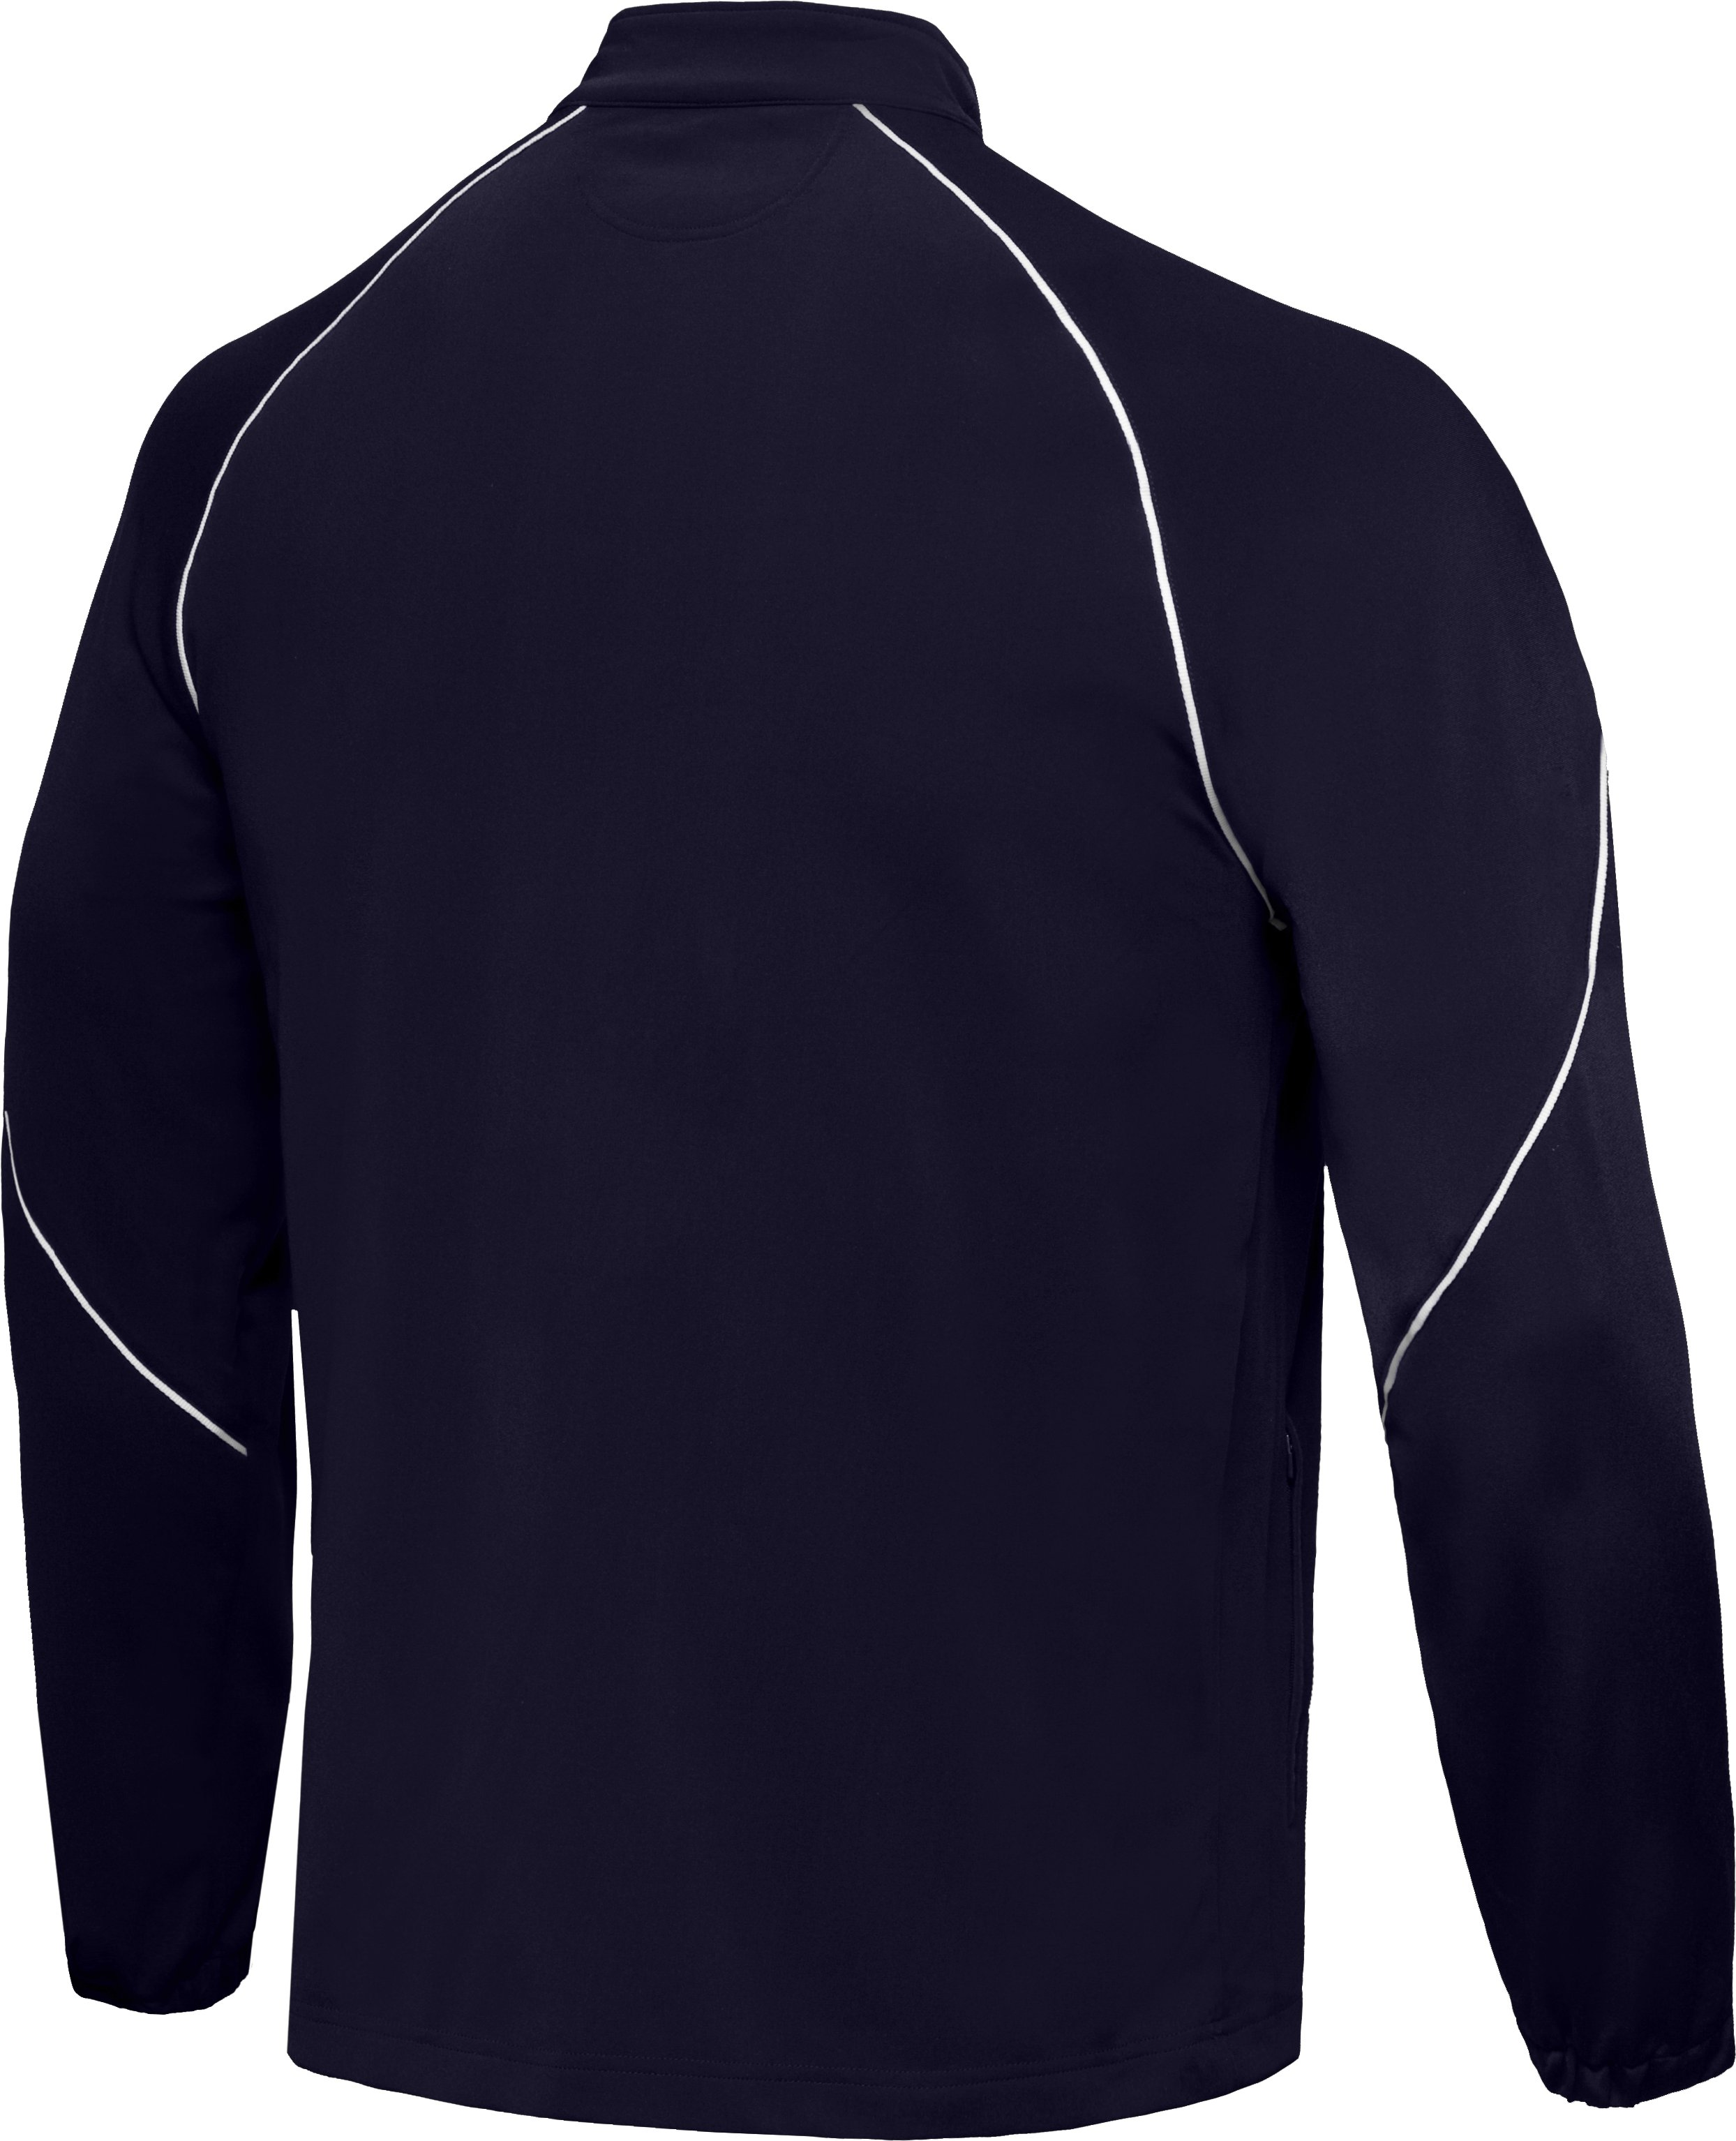 Men's Team Knit Warm-Up Jacket, Midnight Navy, undefined